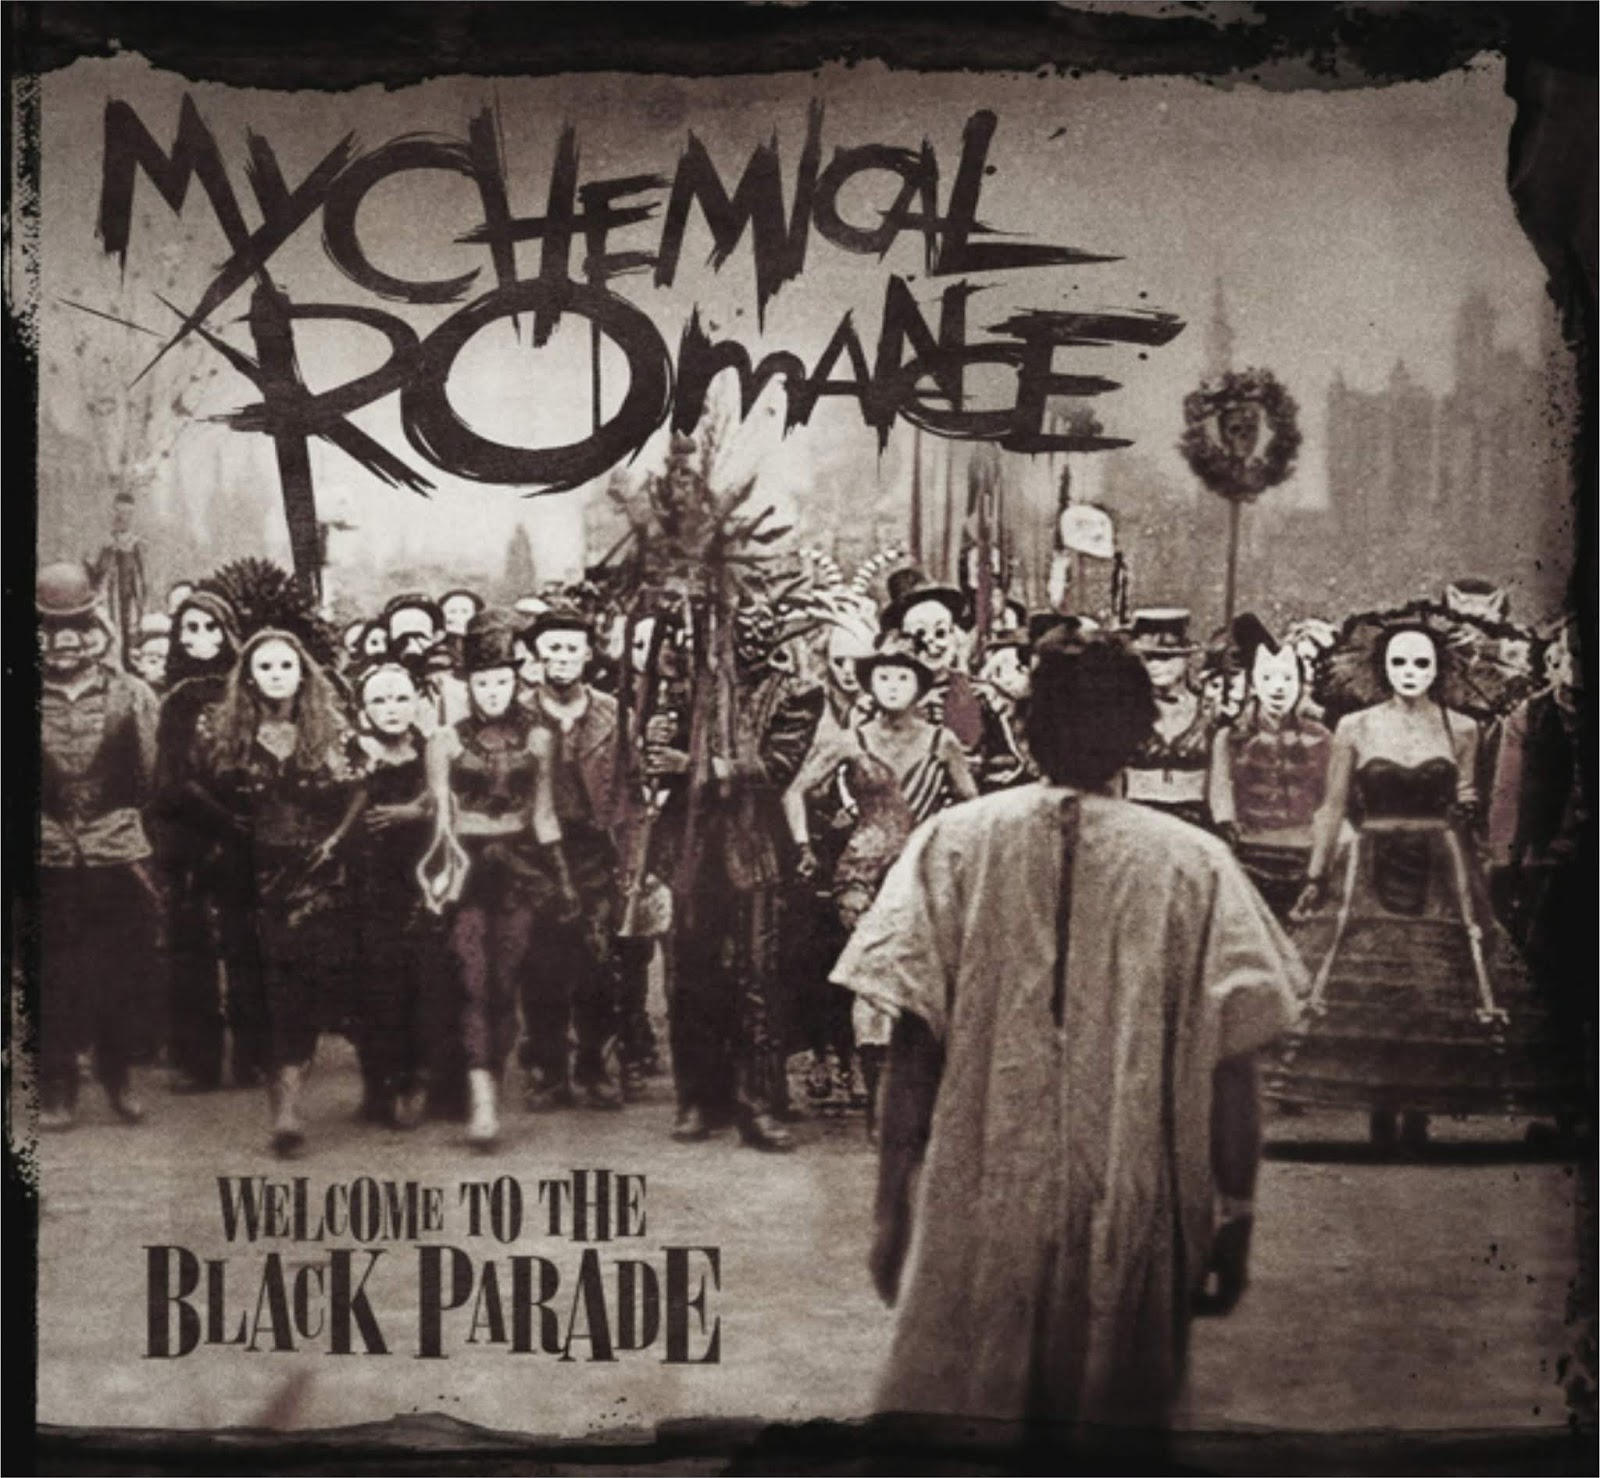 My Chemical Romance - Welcome to The Black Parade (Lyrics +